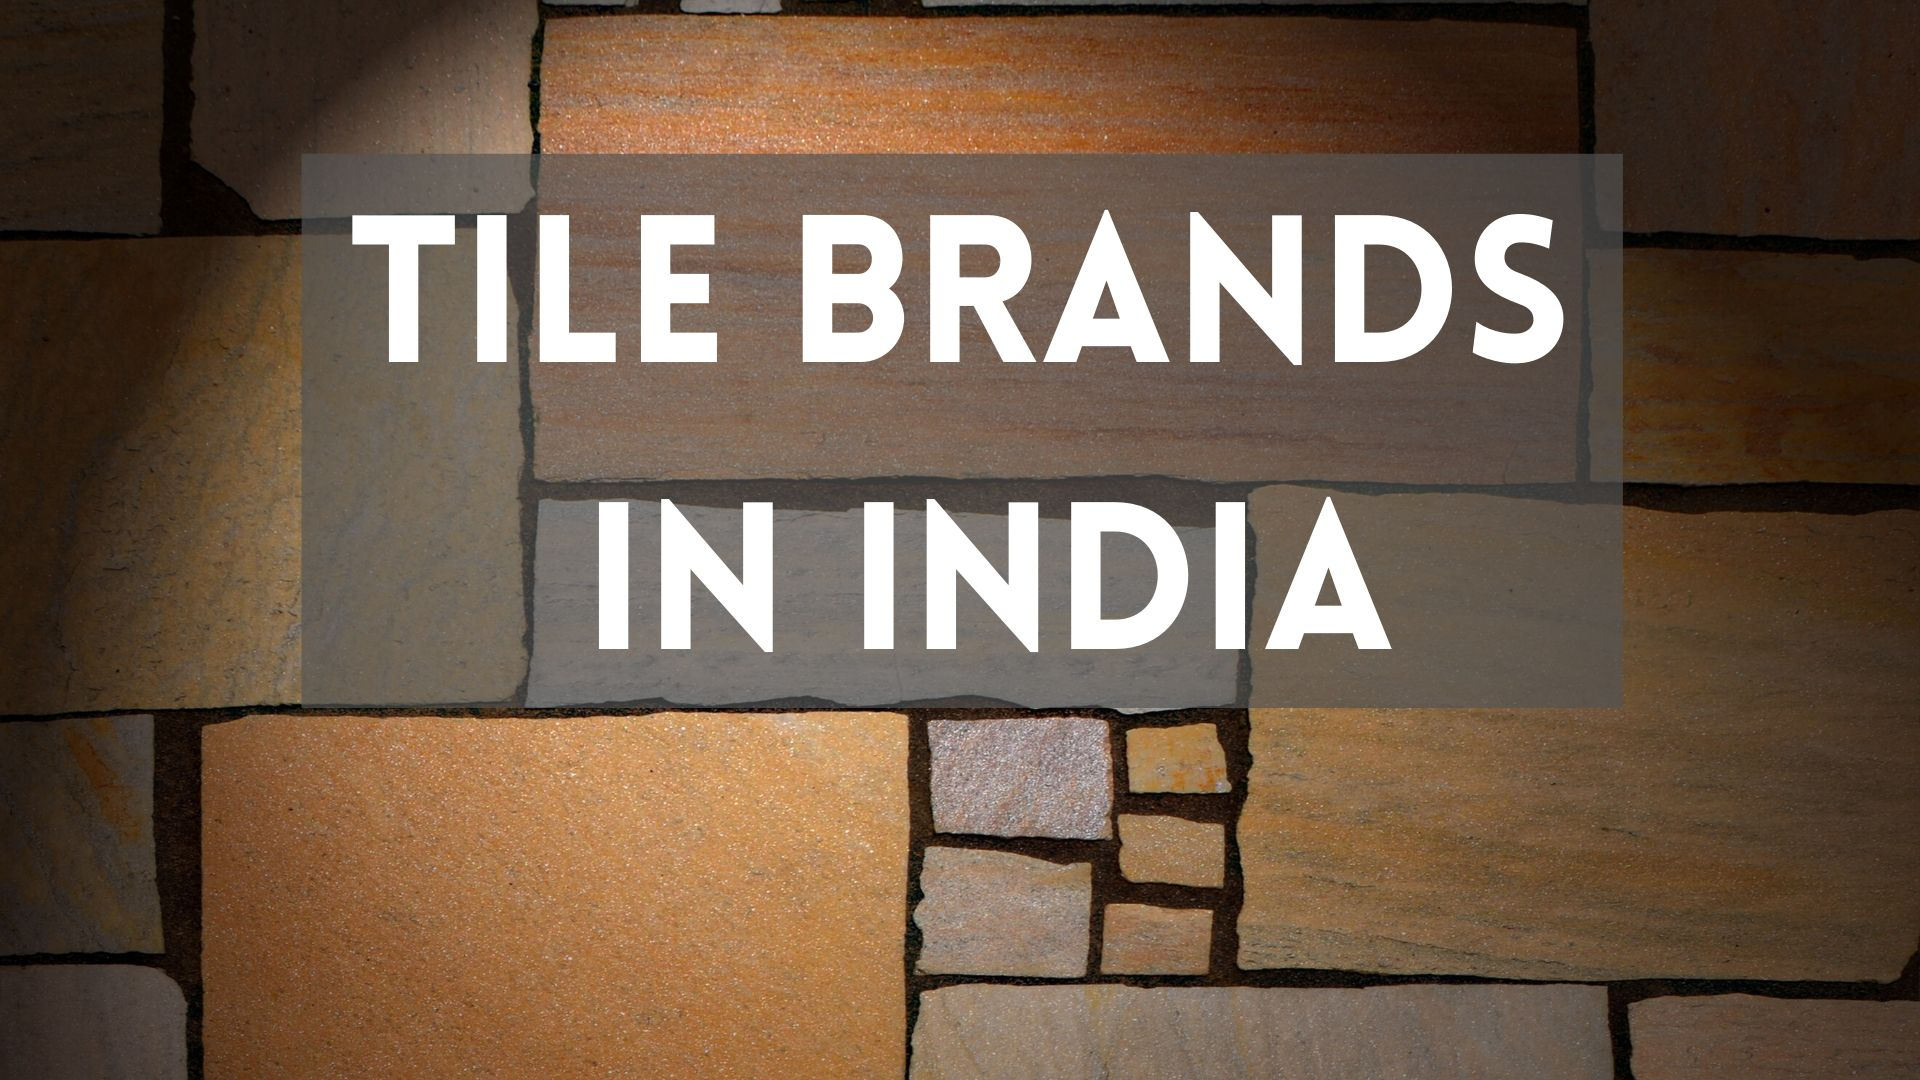 Tile Brands In India